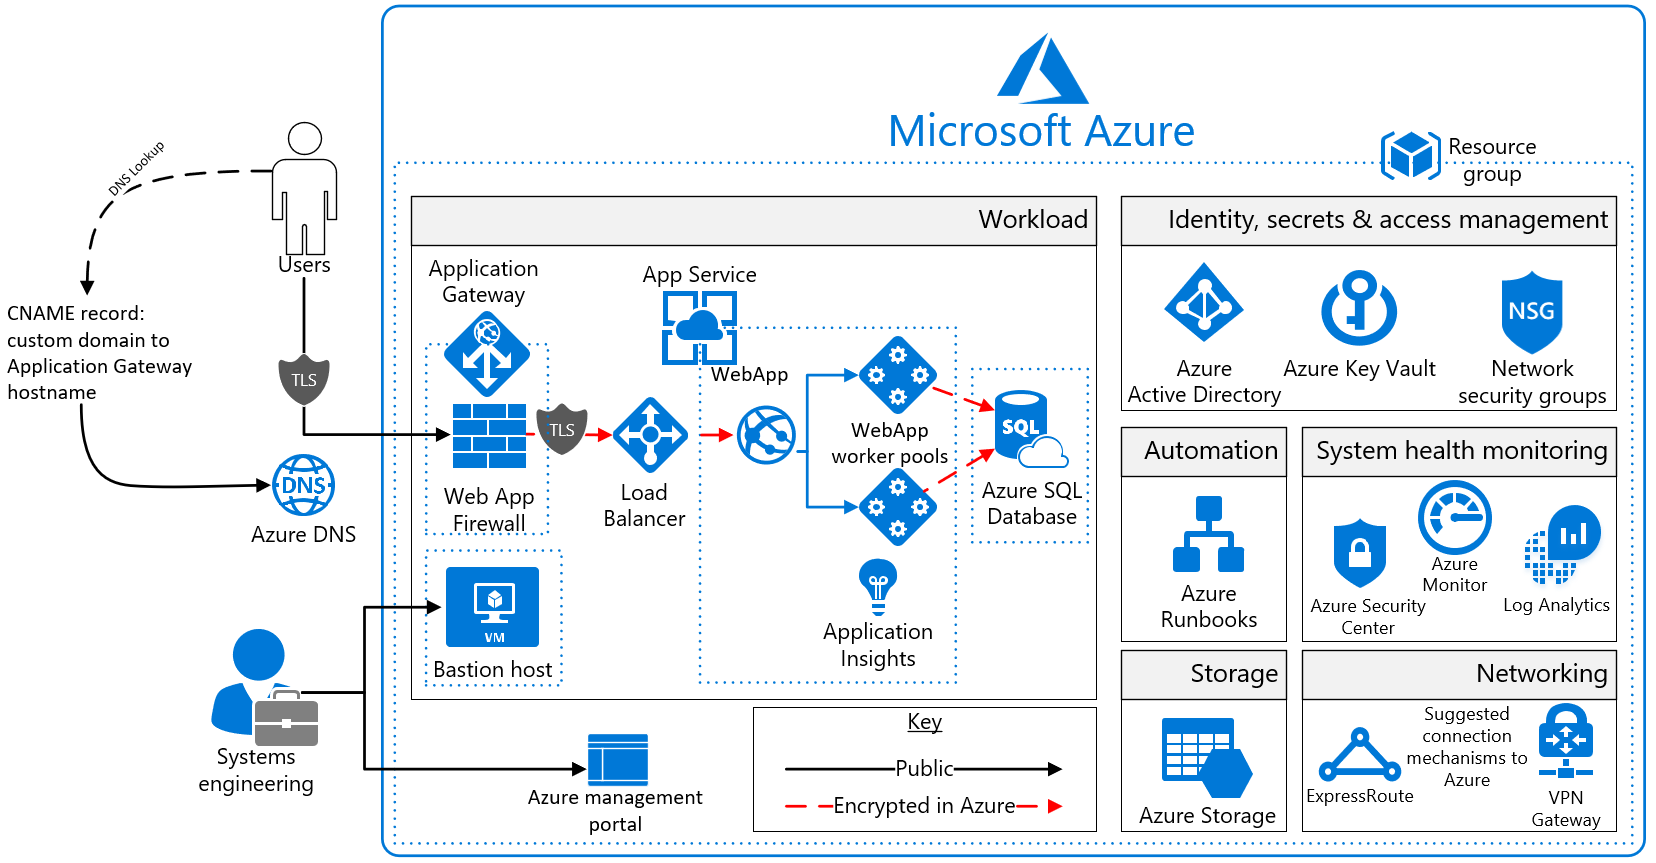 7b6a689a2e814ddf8af3f8e548f9c814 - Deploy Asp Net Web Application To Azure